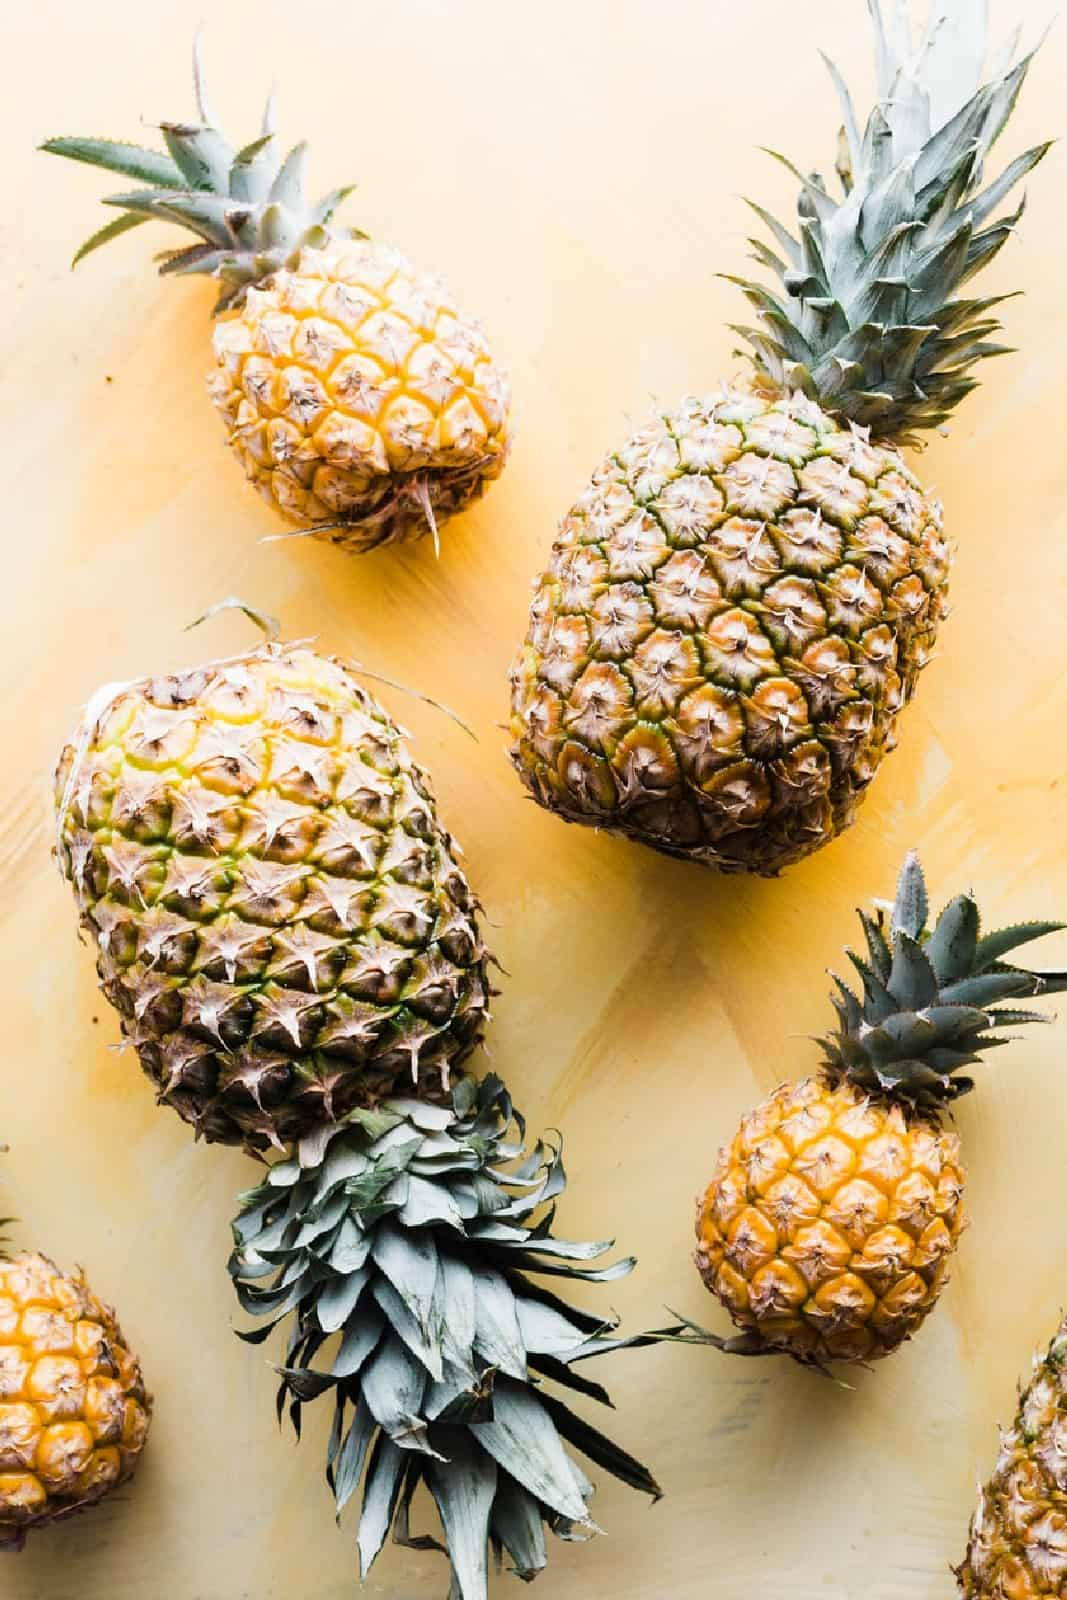 Overhead shot of various pineapples on a yellow background.